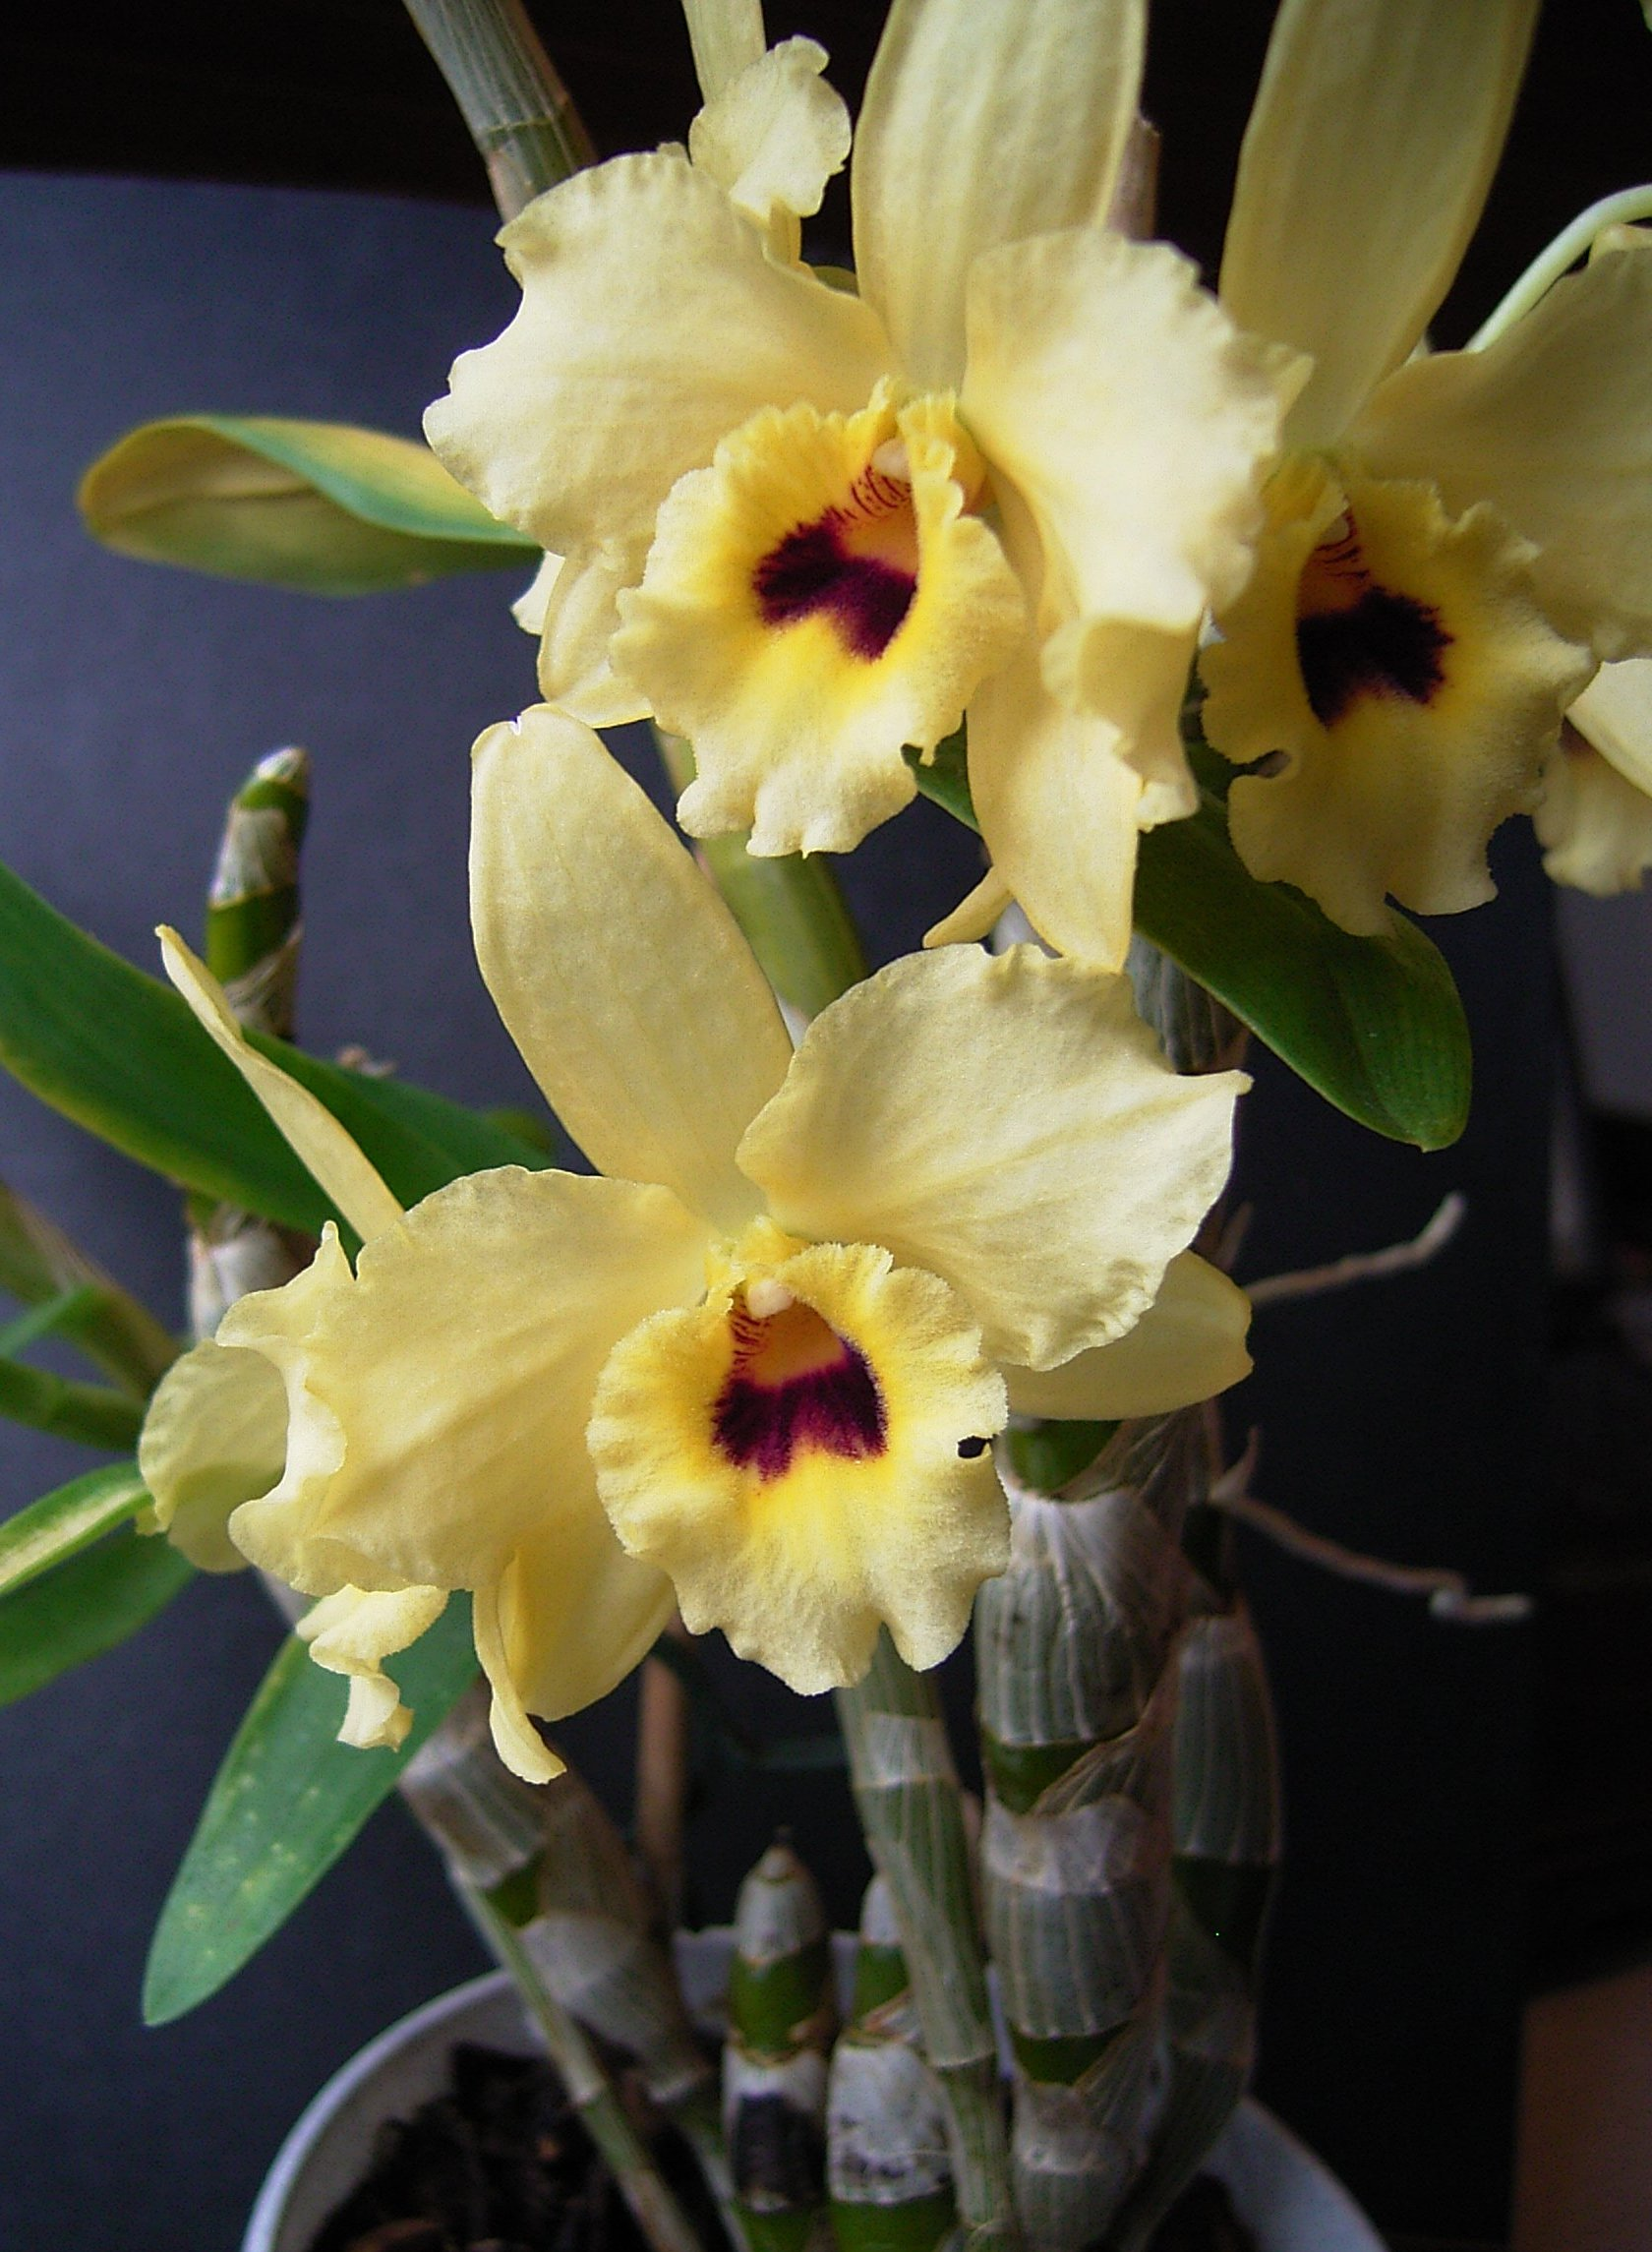 http://upload.wikimedia.org/wikipedia/commons/f/fb/Dendrobium_nobile_hybrid.jpg